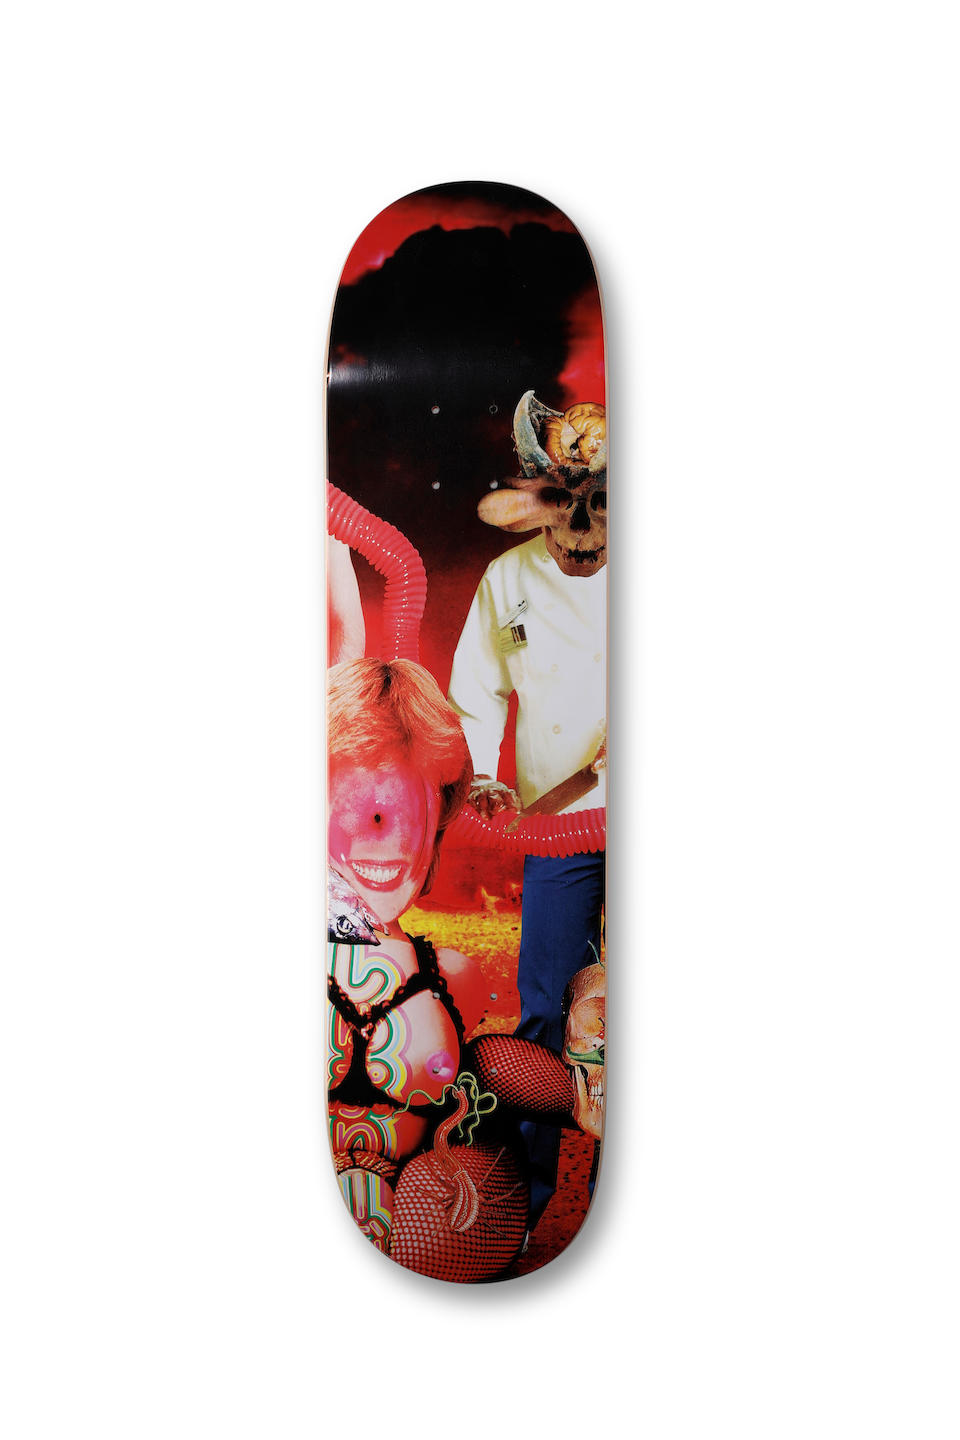 Supreme, New York A collection of 152 full-sized Supreme skateboard decks, published by Supreme, New York between 2008-2019